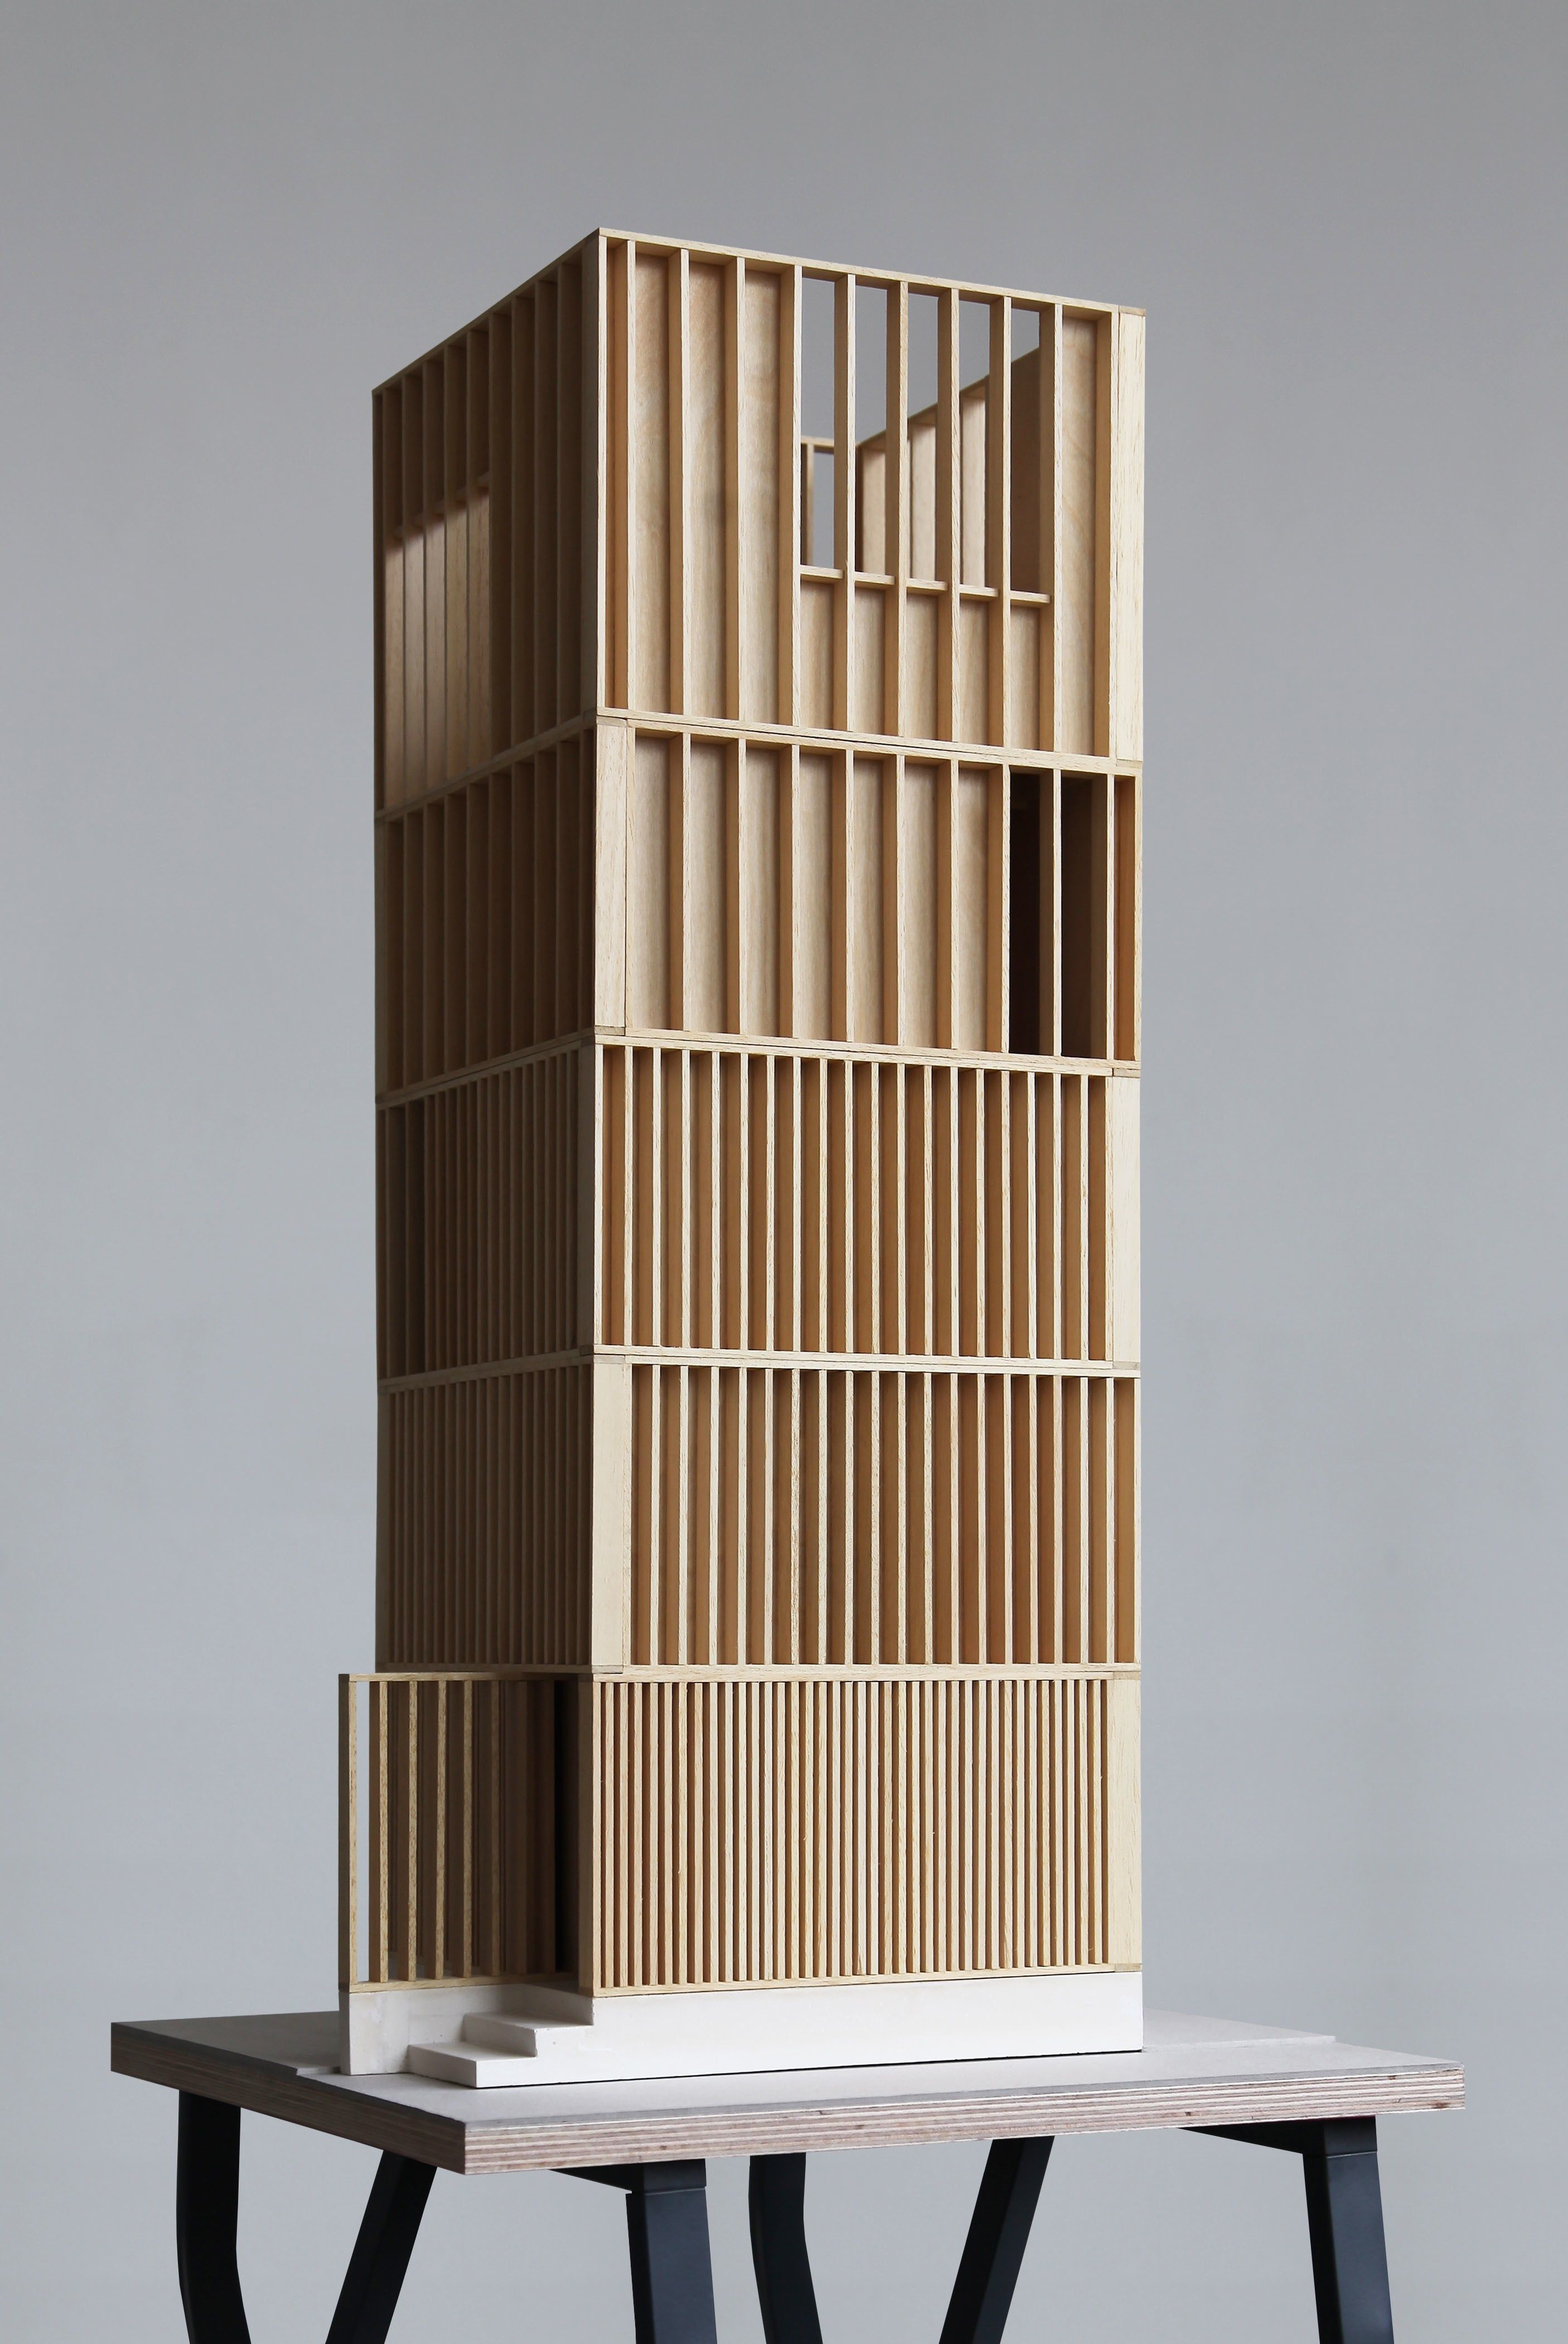 RA Summer Exhibition 2016 work 363: UNBUILT PROPOSAL FOR A VIEWING TOWER AT…